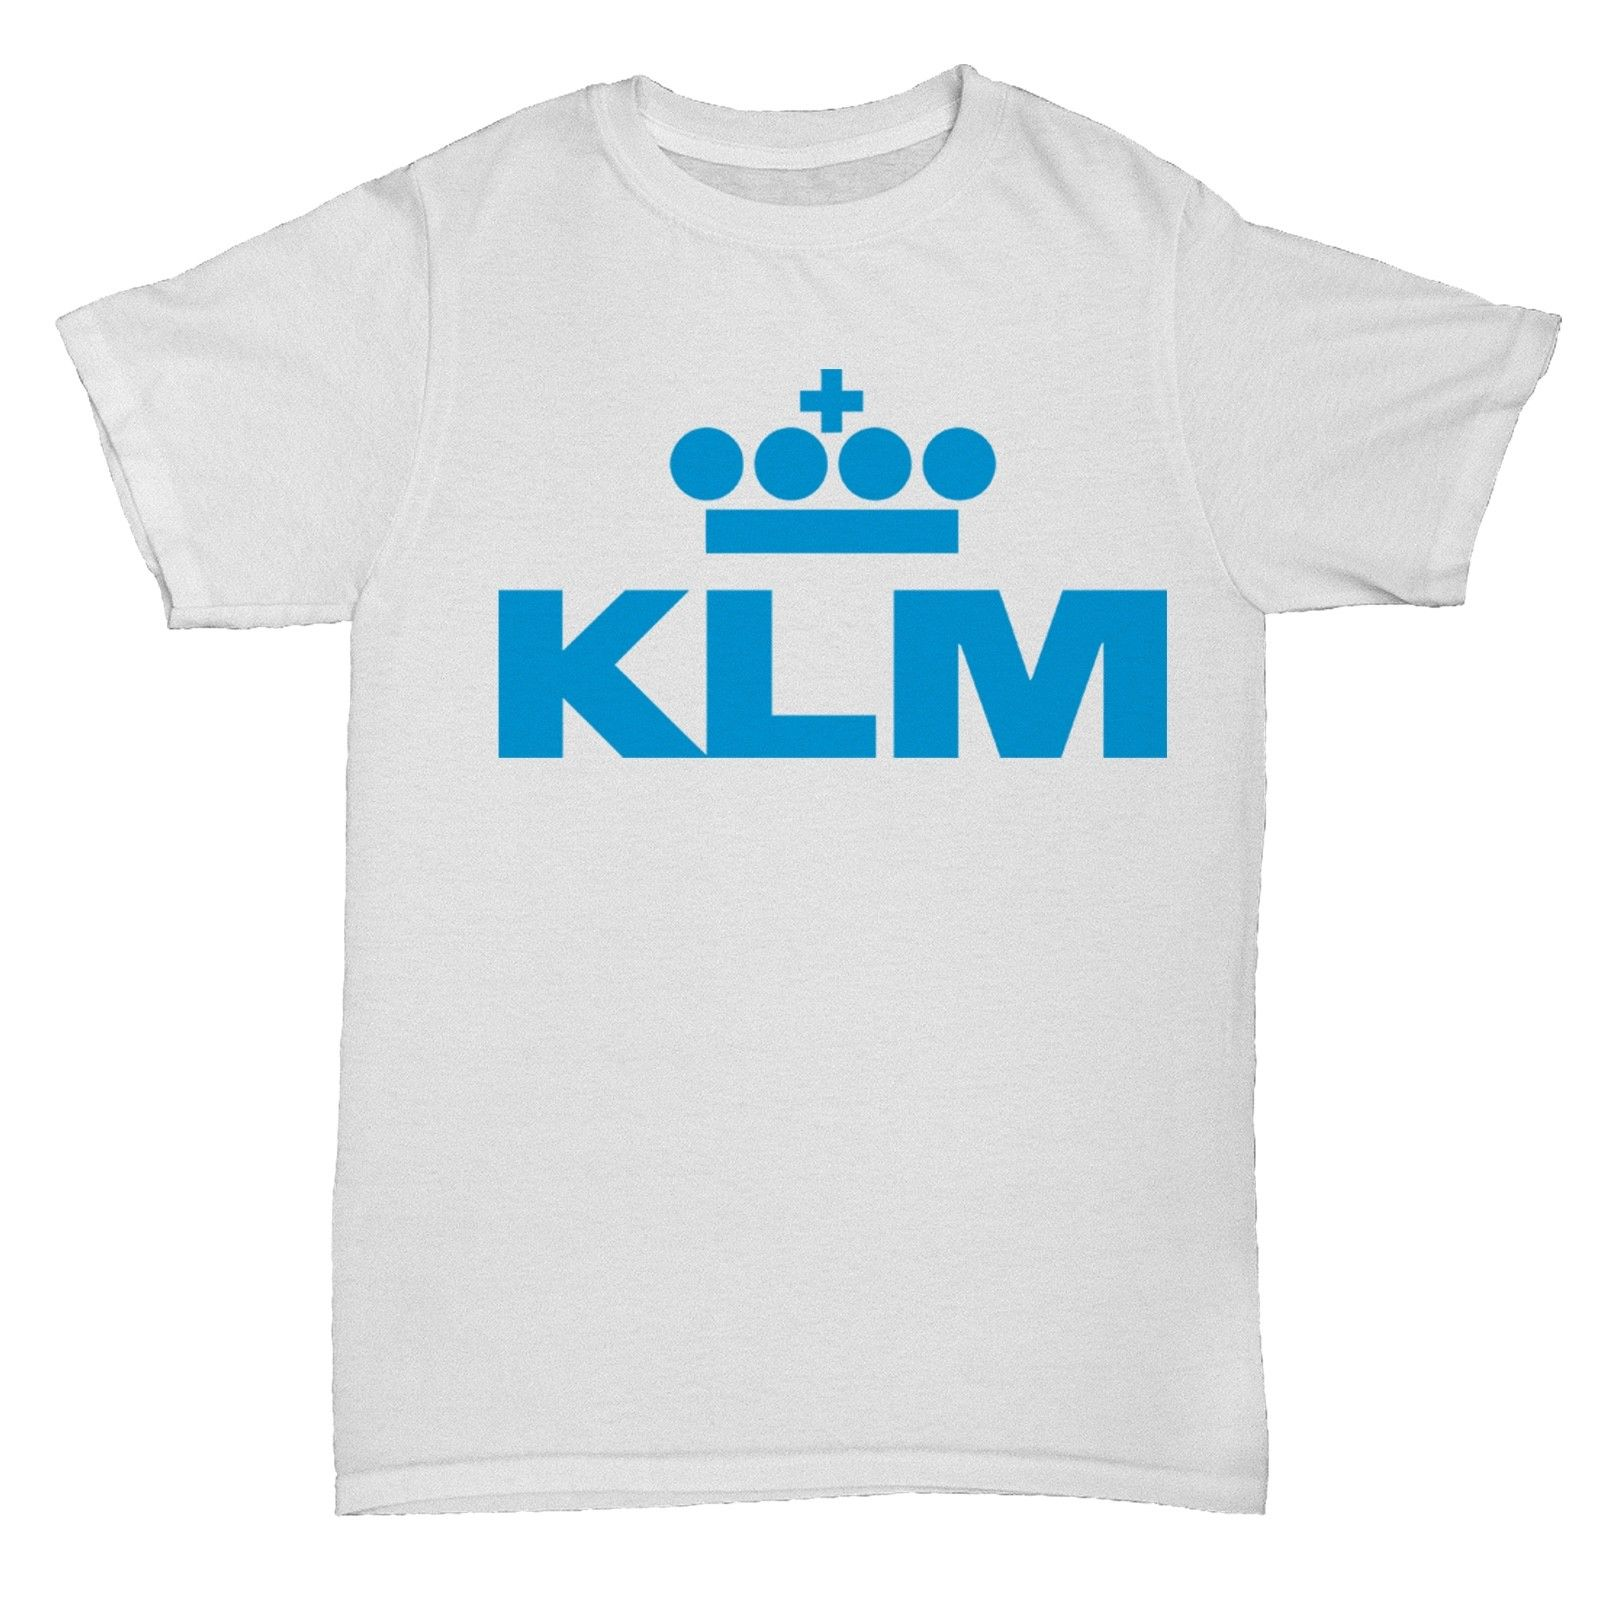 KLM AIRLINES RETRO AEROPLANE BOAC PAN AM T SHIRT Black Cotton T-Shirt Top Tee Cartoon Ch ...